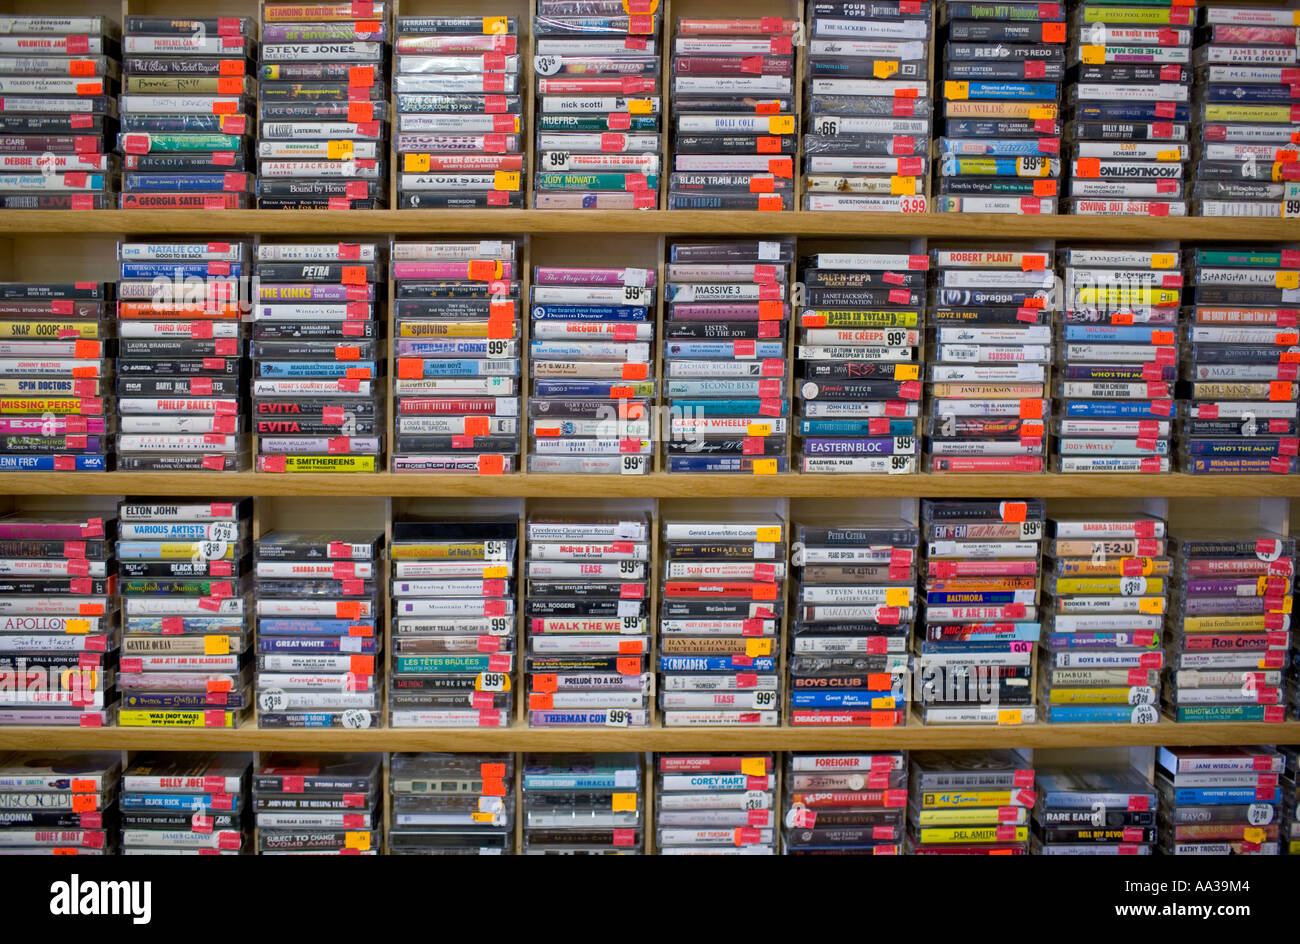 Music Cassette Tapes in store - Stock Image